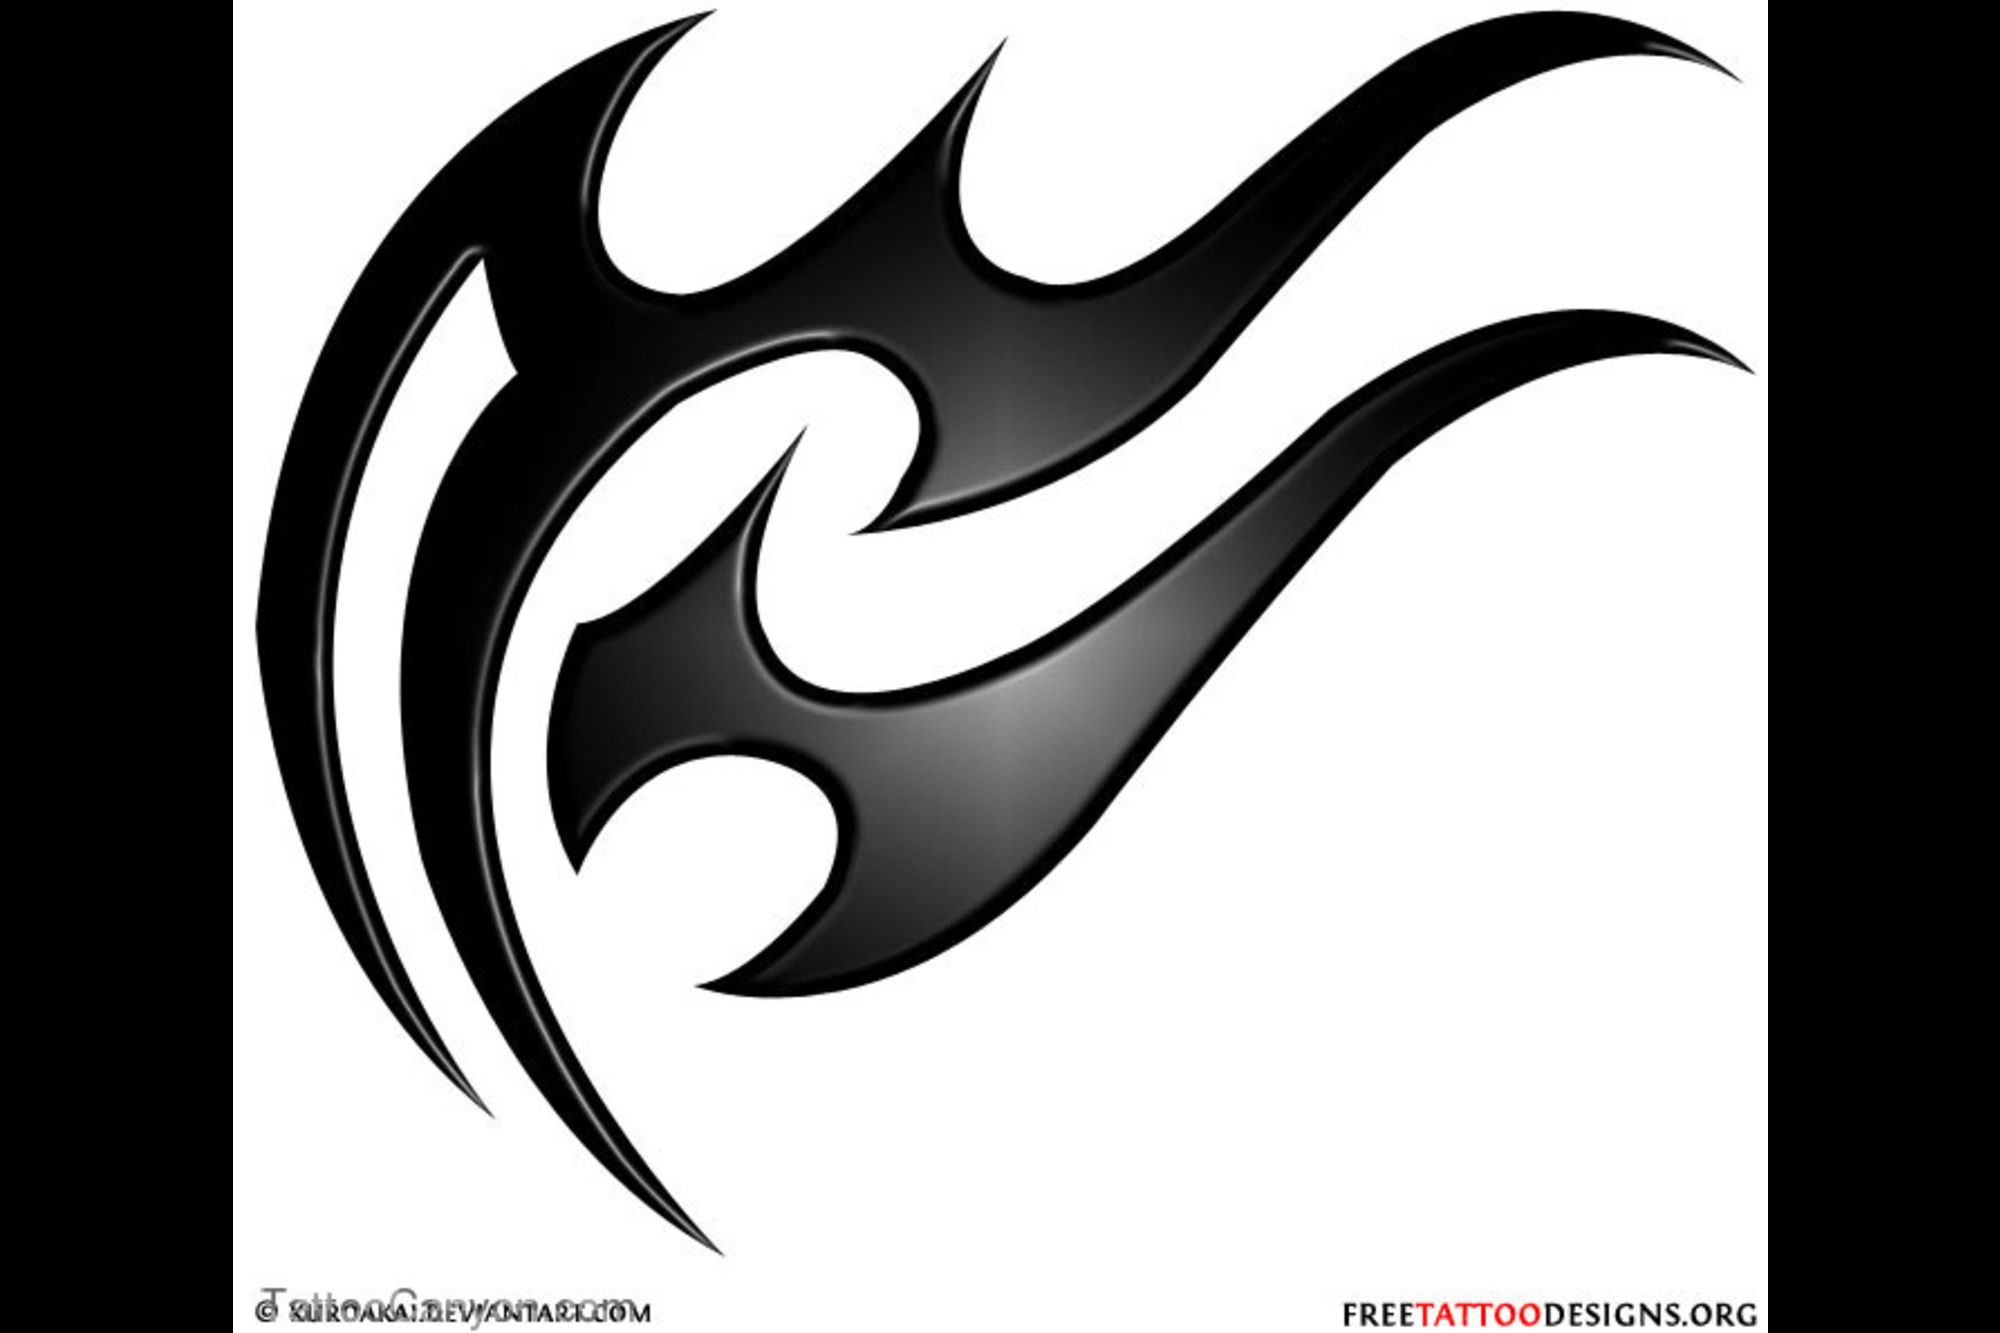 Pin 35 cool aquarius tattoo designs sign tattoos on pinterest aquarius tattoos represent the zodiac eleventh sign symbolized by water bearer mostly aquarius is depicted as a pot that is spilling water or water alone biocorpaavc Choice Image